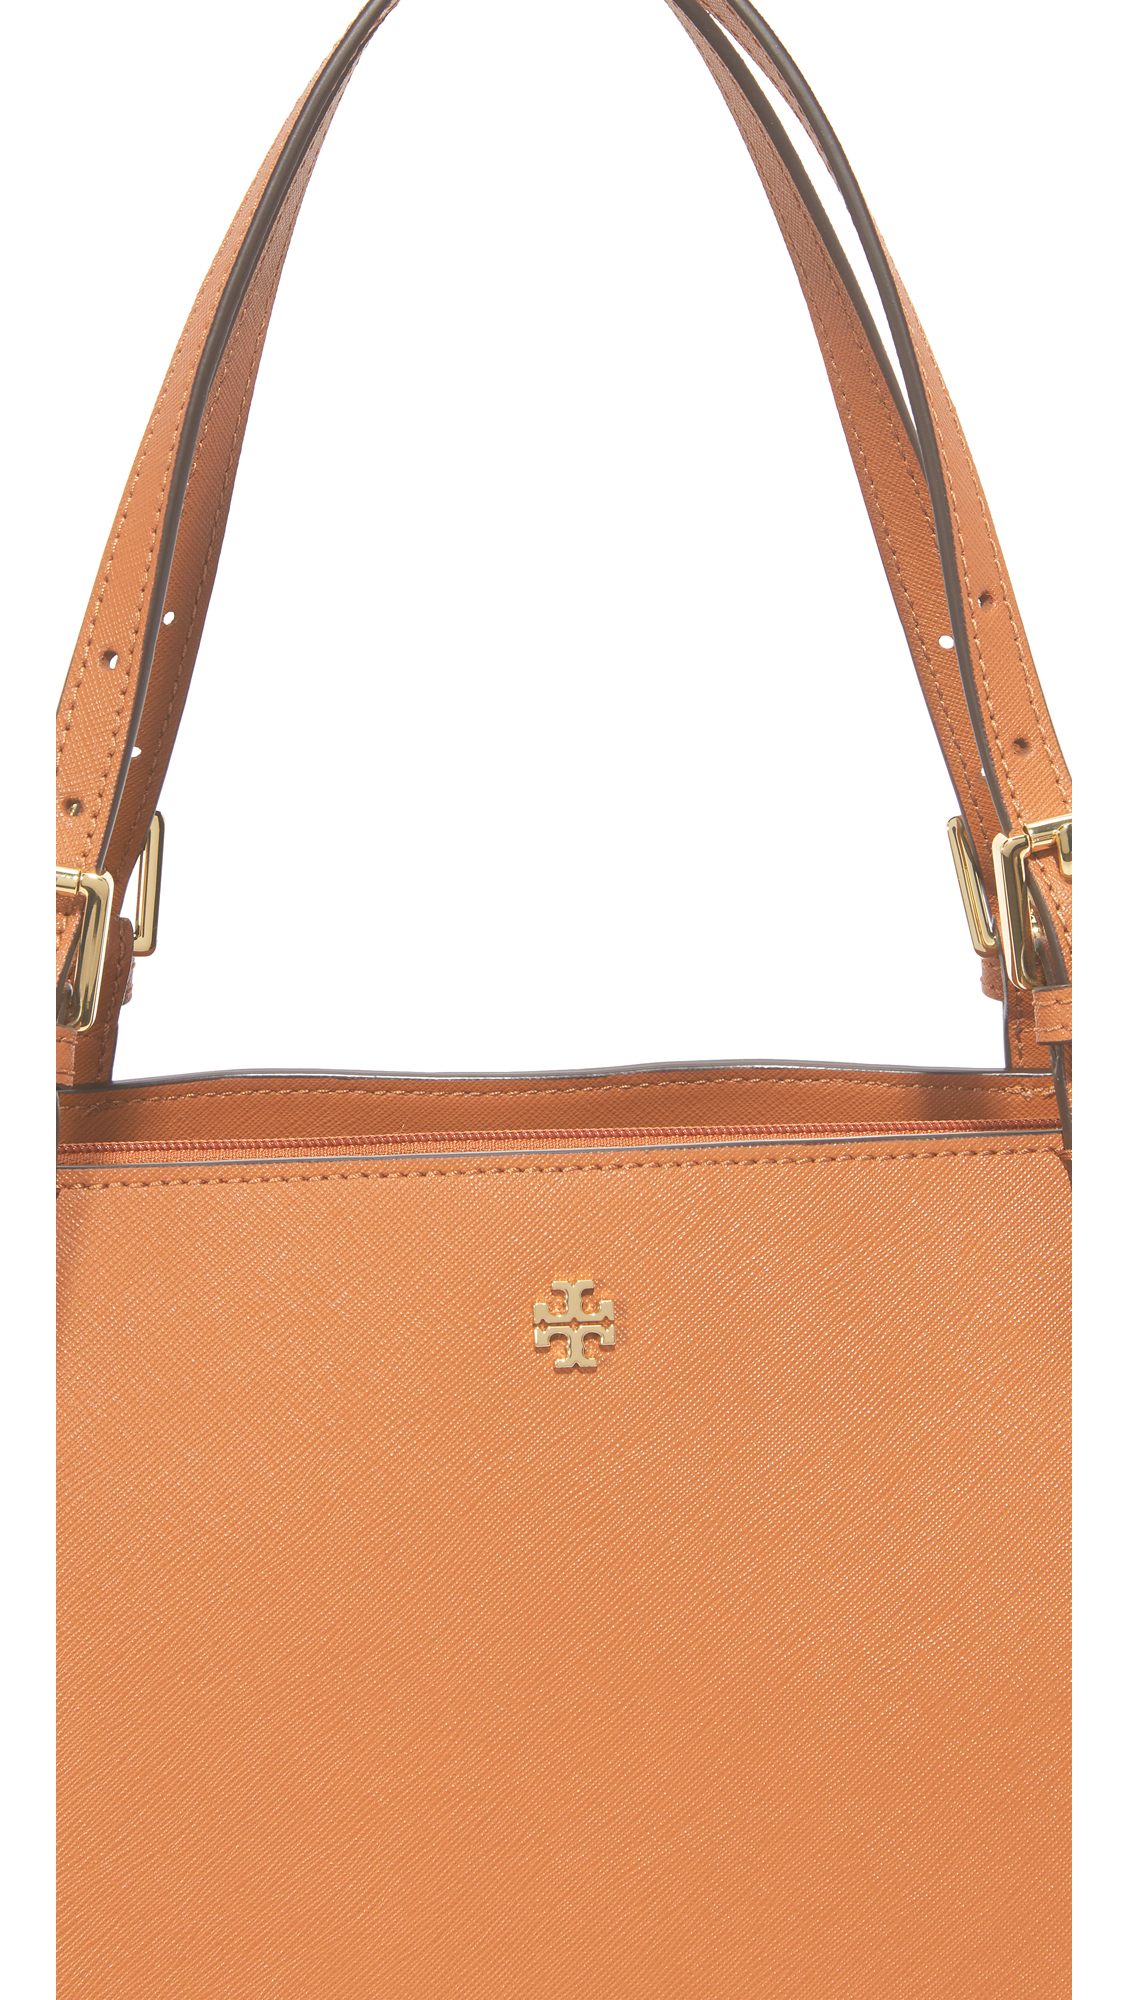 778b3cb0f1a7 Tory Burch York Small Buckle Tote